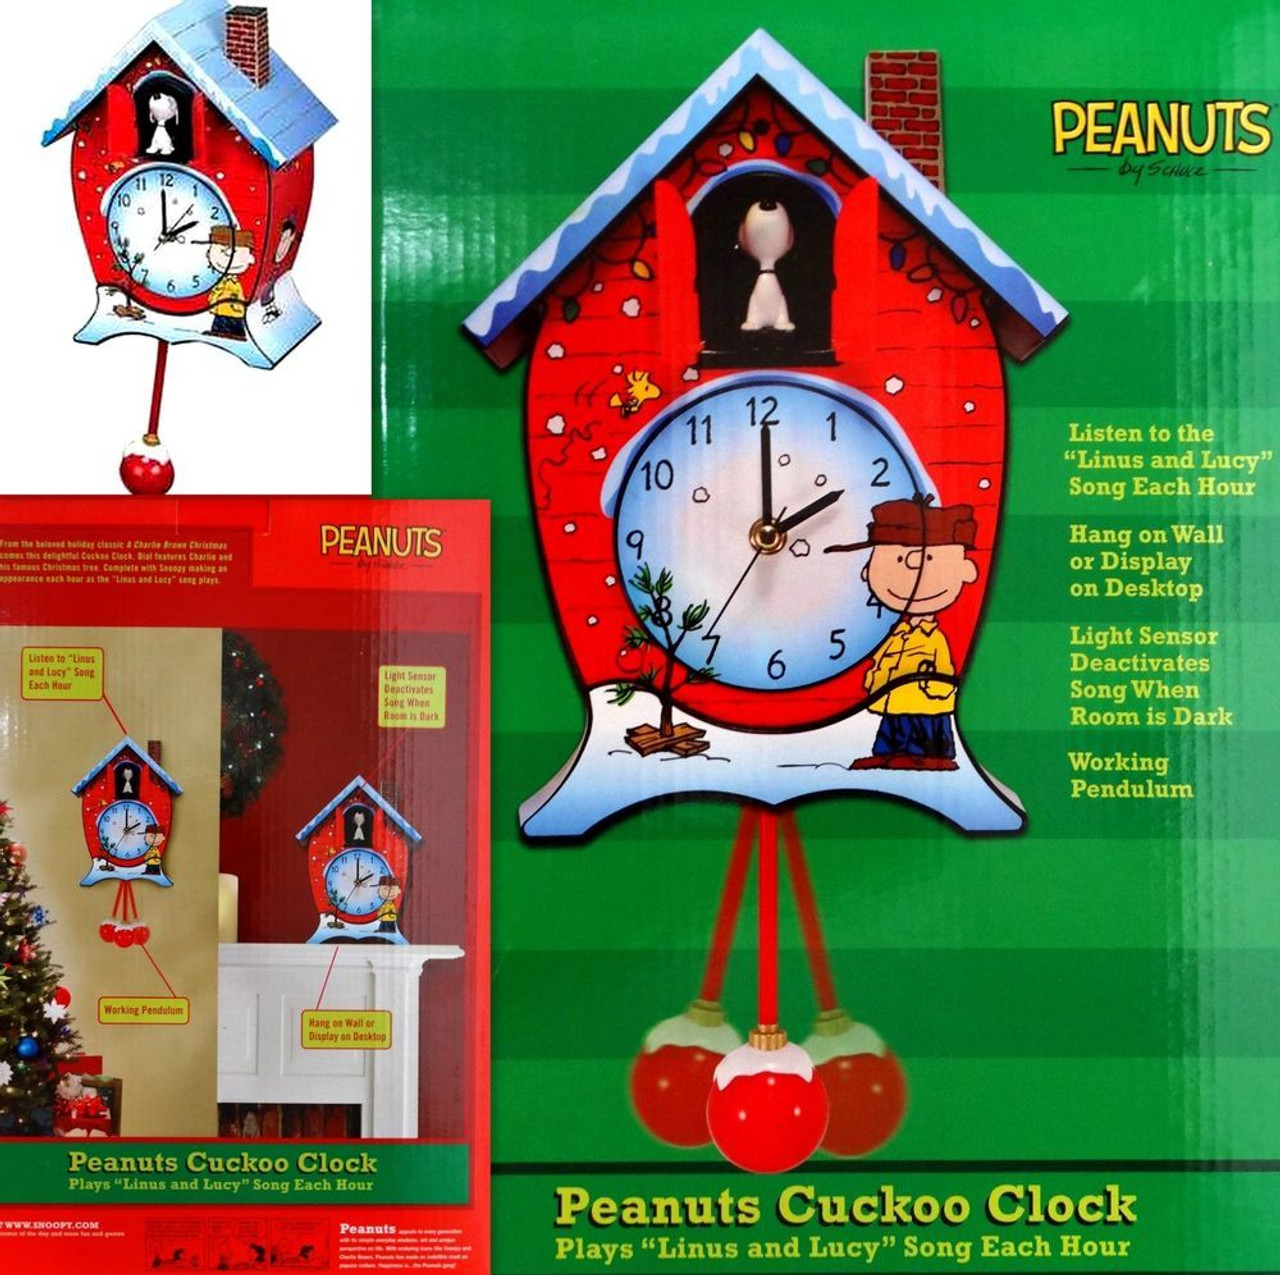 Snoopy Christmas Images.Peanuts Snoopy Christmas Cuckoo Clock